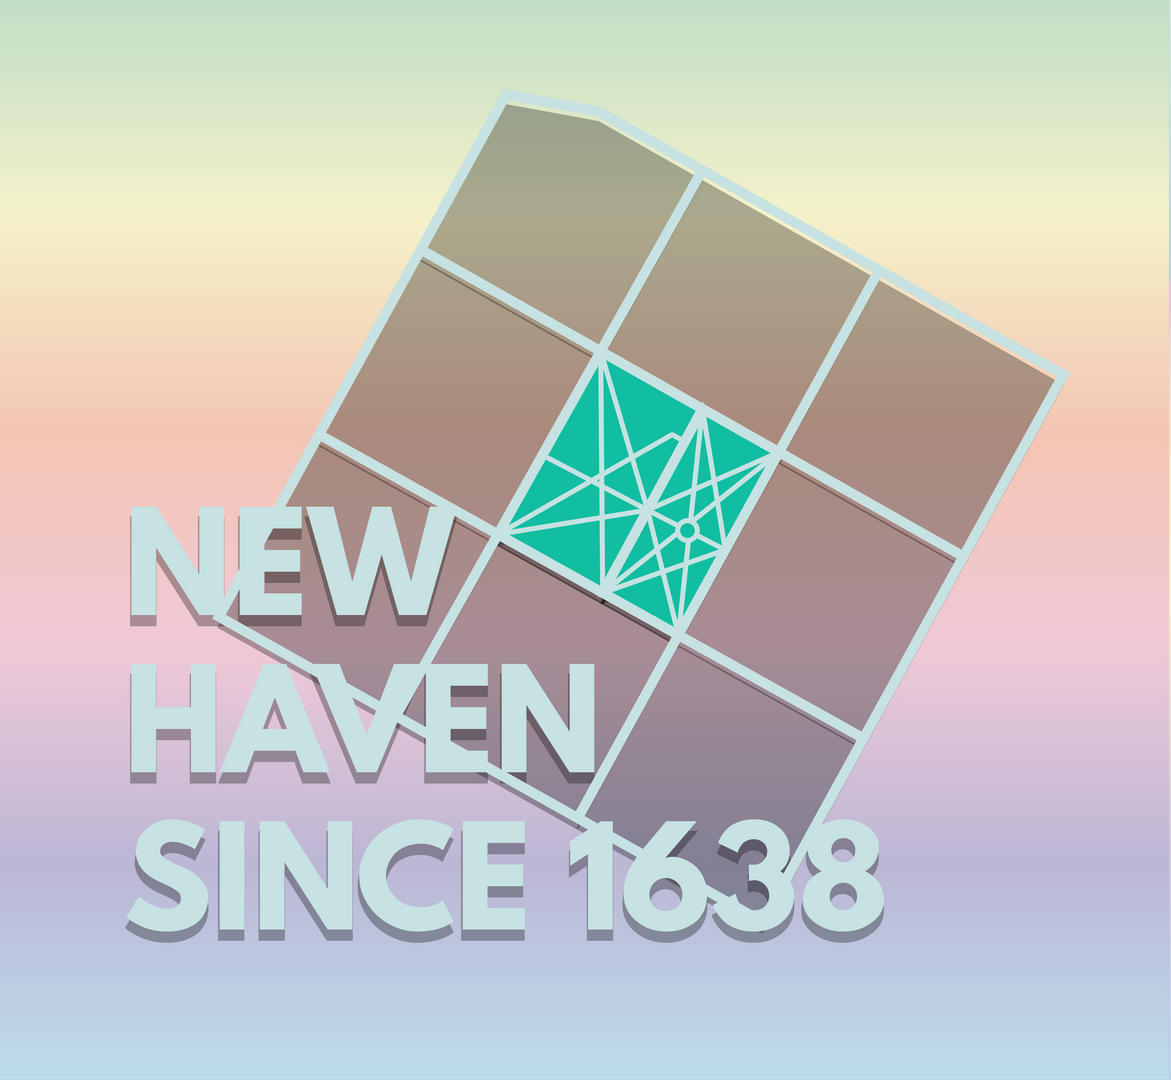 doodling about New Haven